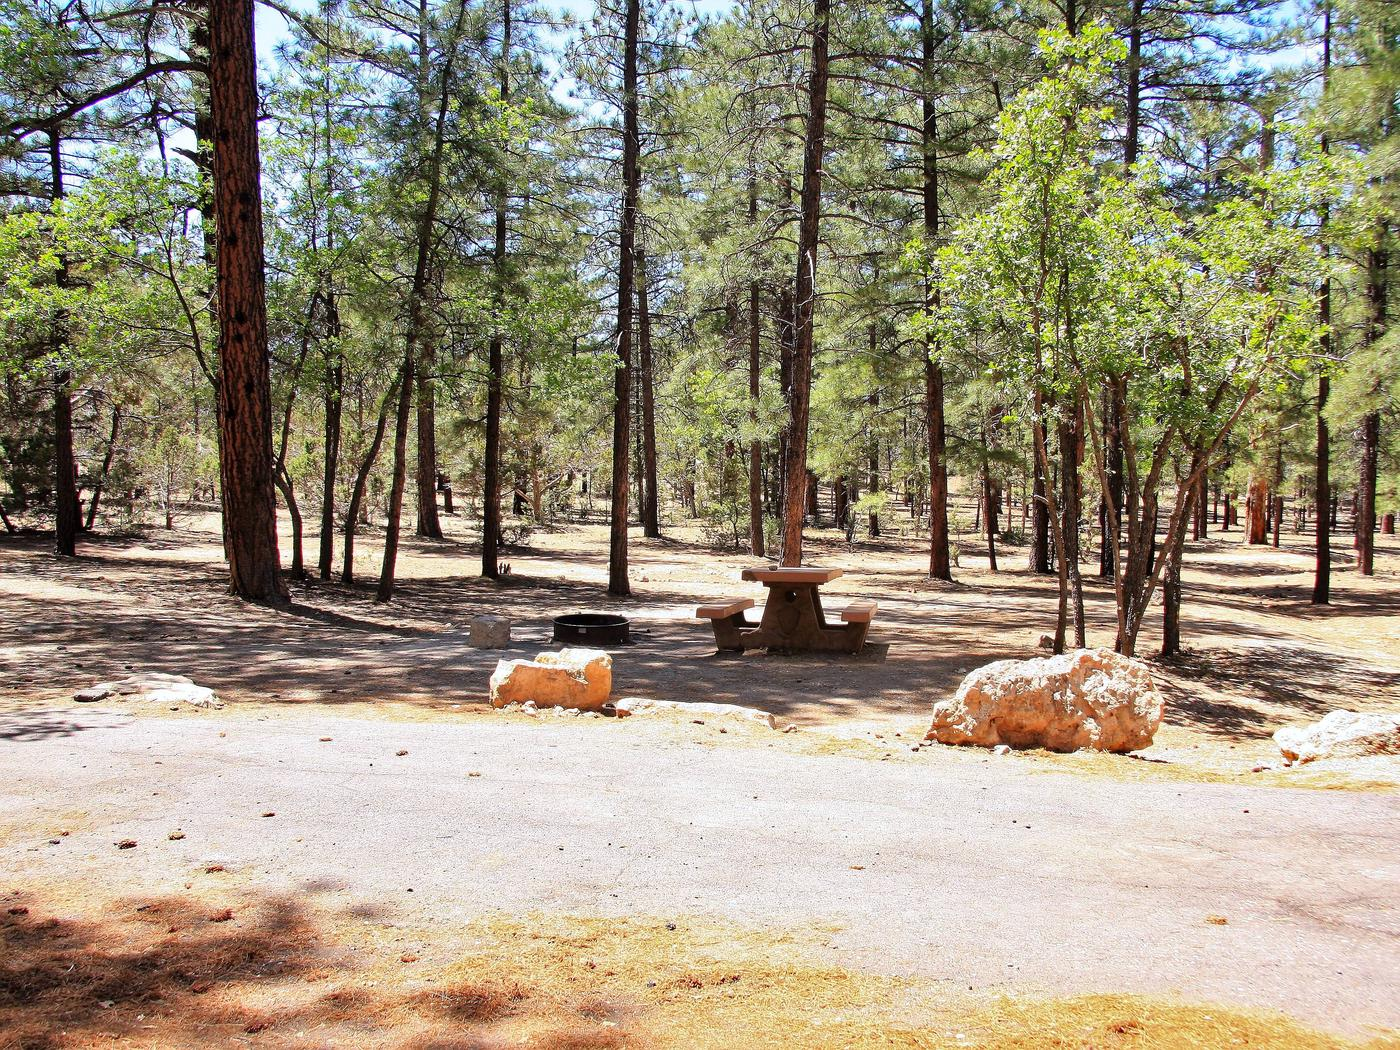 Parking spot, fire pit, and picnic table in Mather CampgroundThe parking spot, fire pit, and picnic table for Aspen loop site 3.